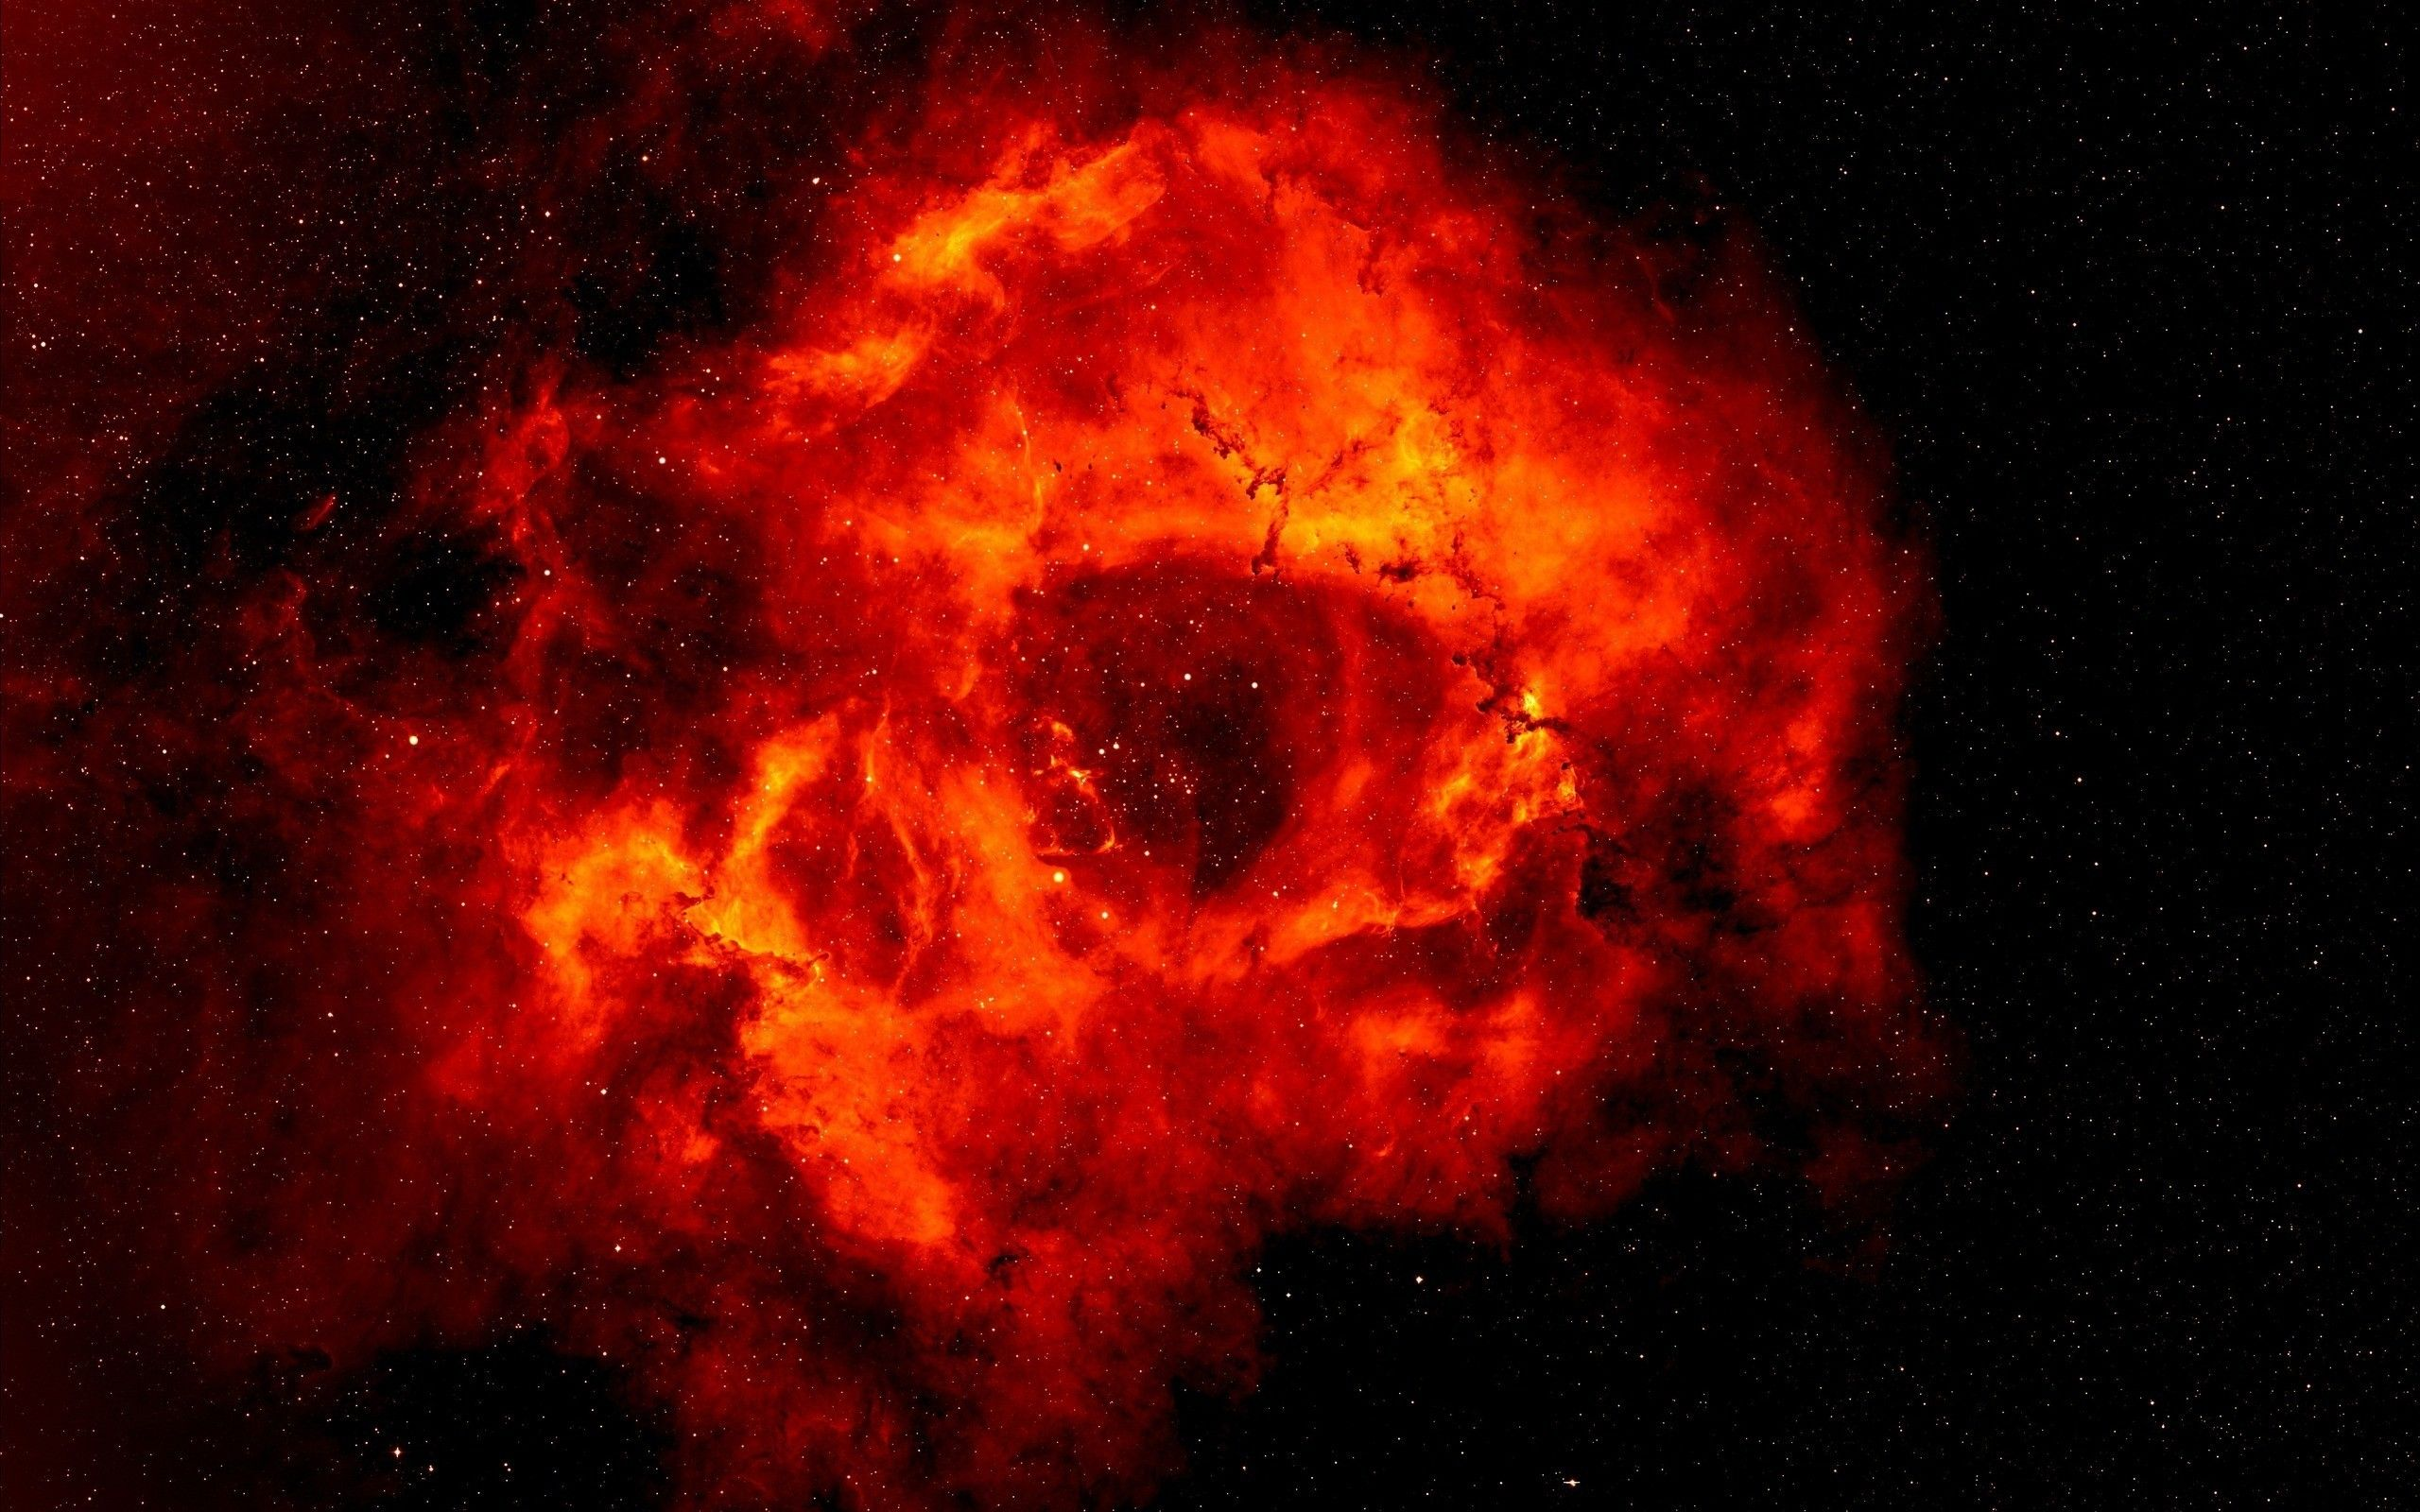 Universe explosion wallpapers top free universe - Explosion wallpaper ...